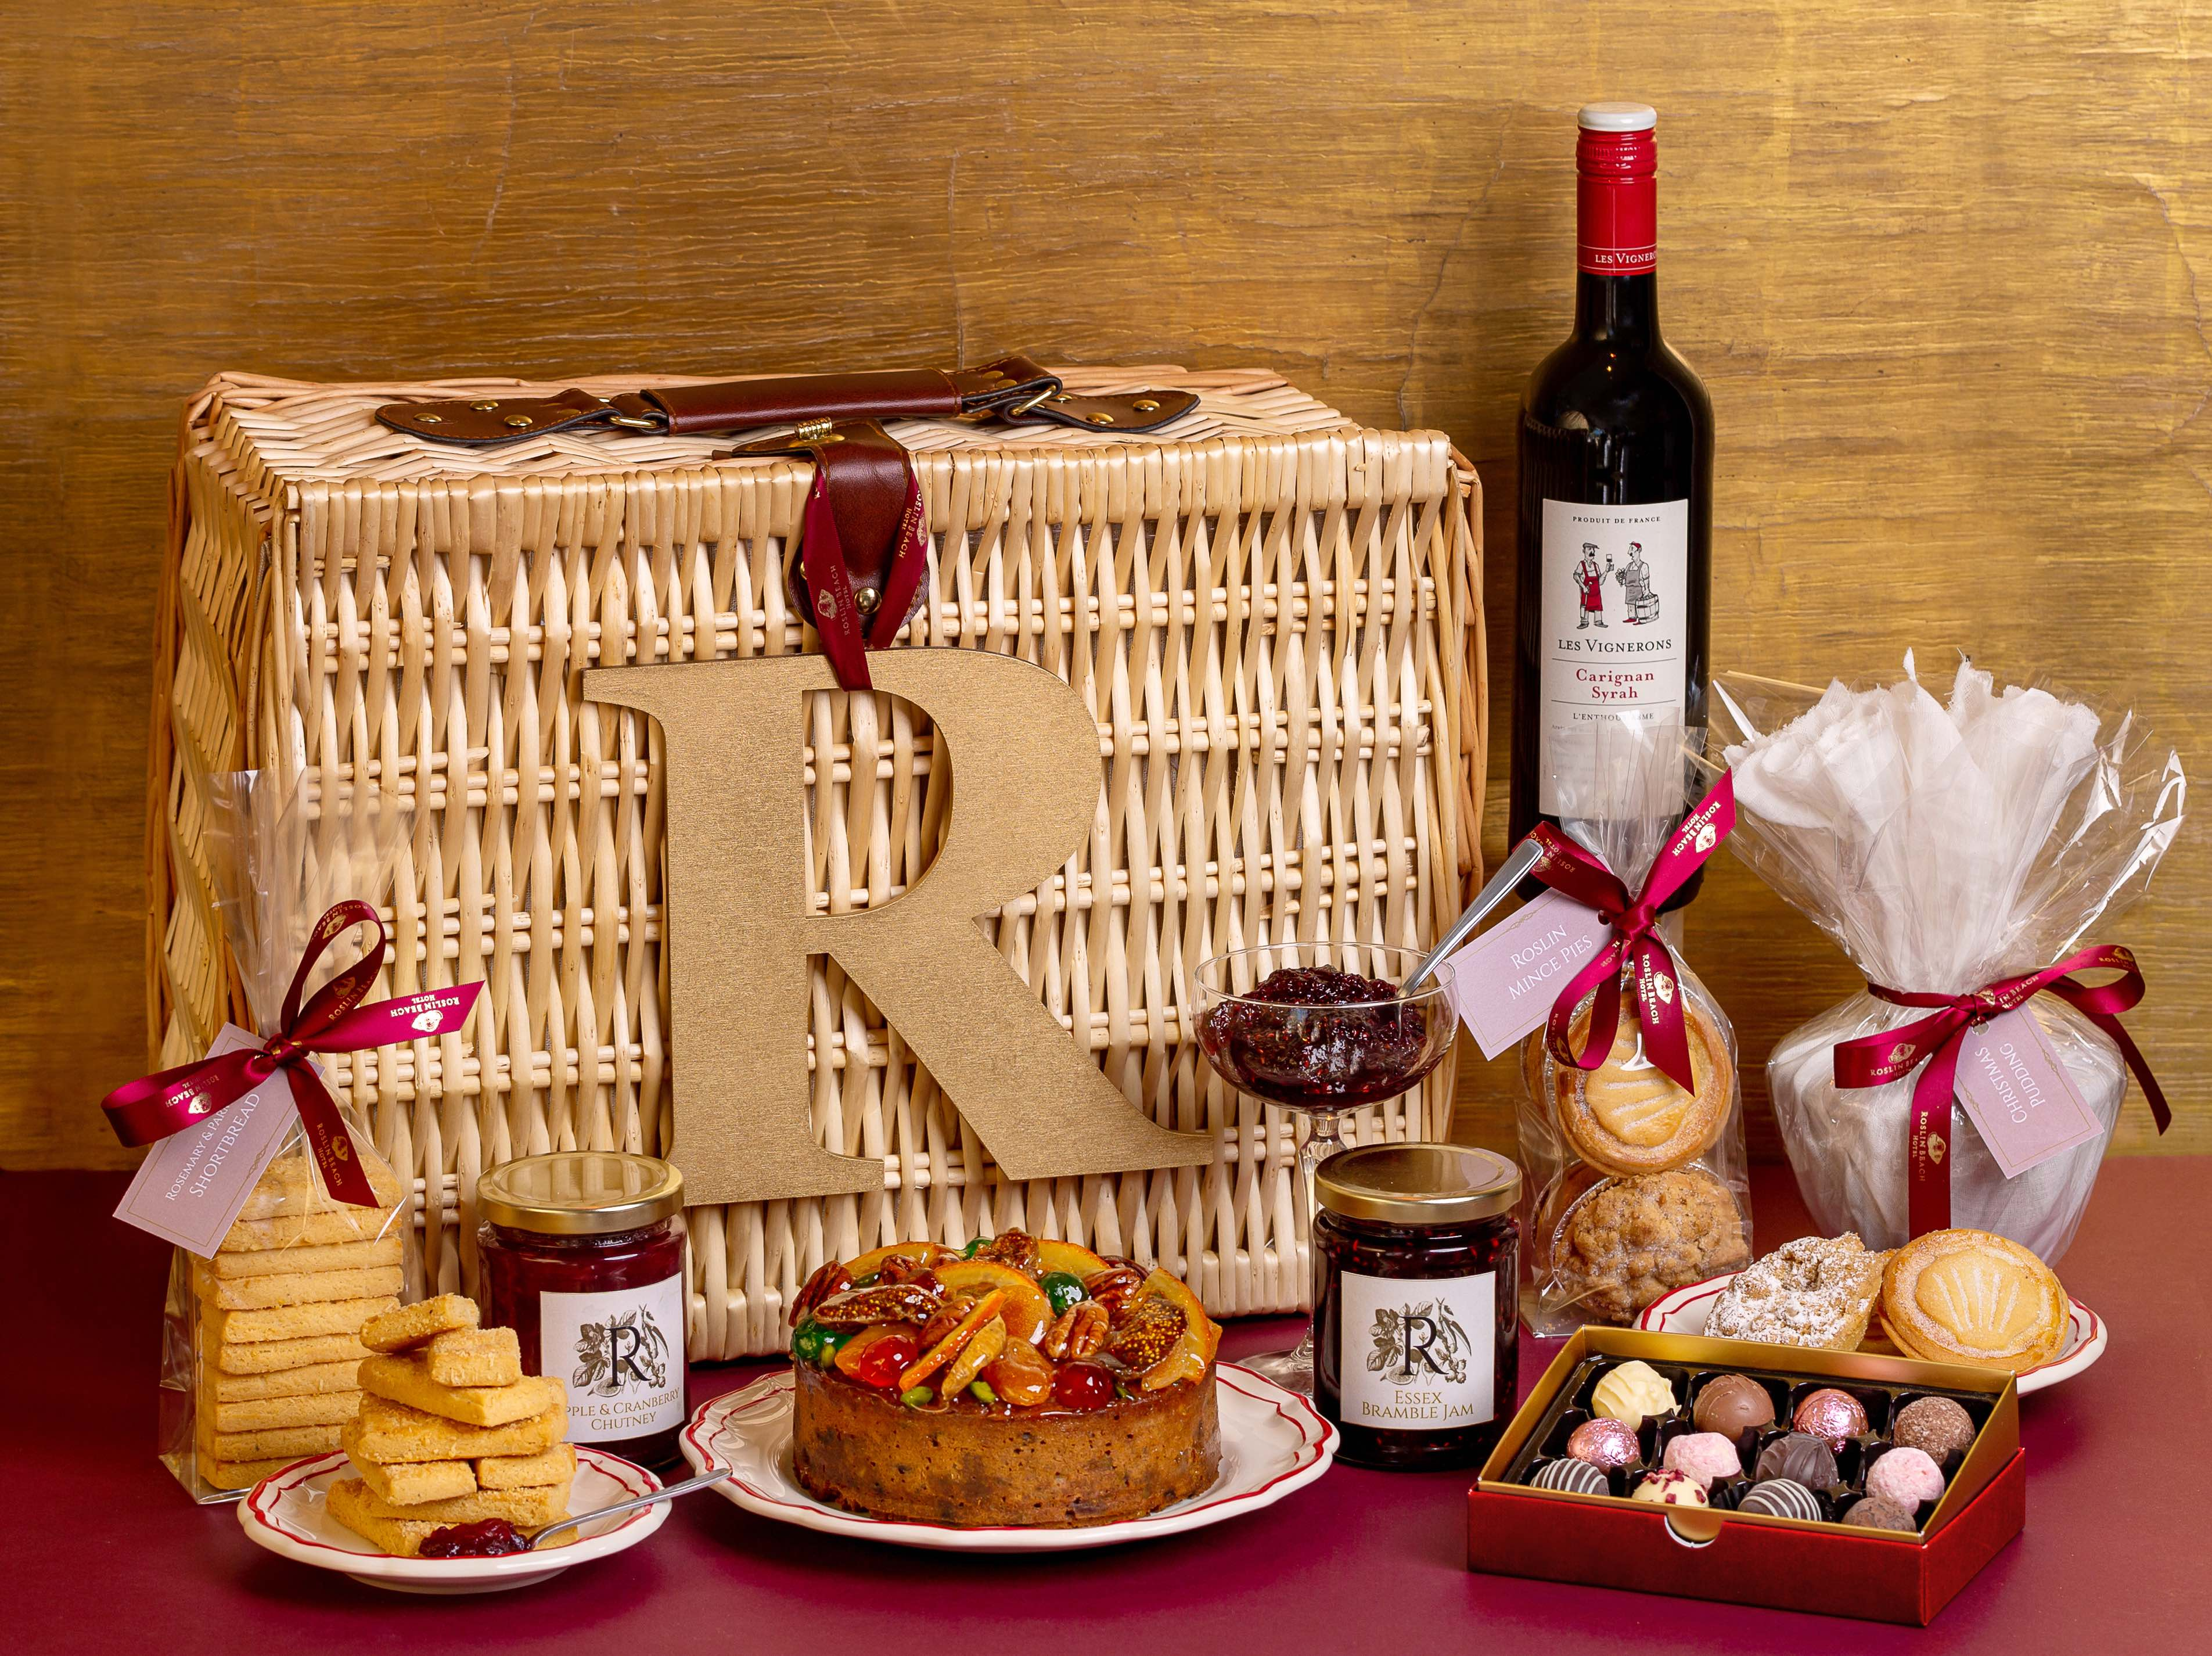 Roslin Beach - Christmas hamper